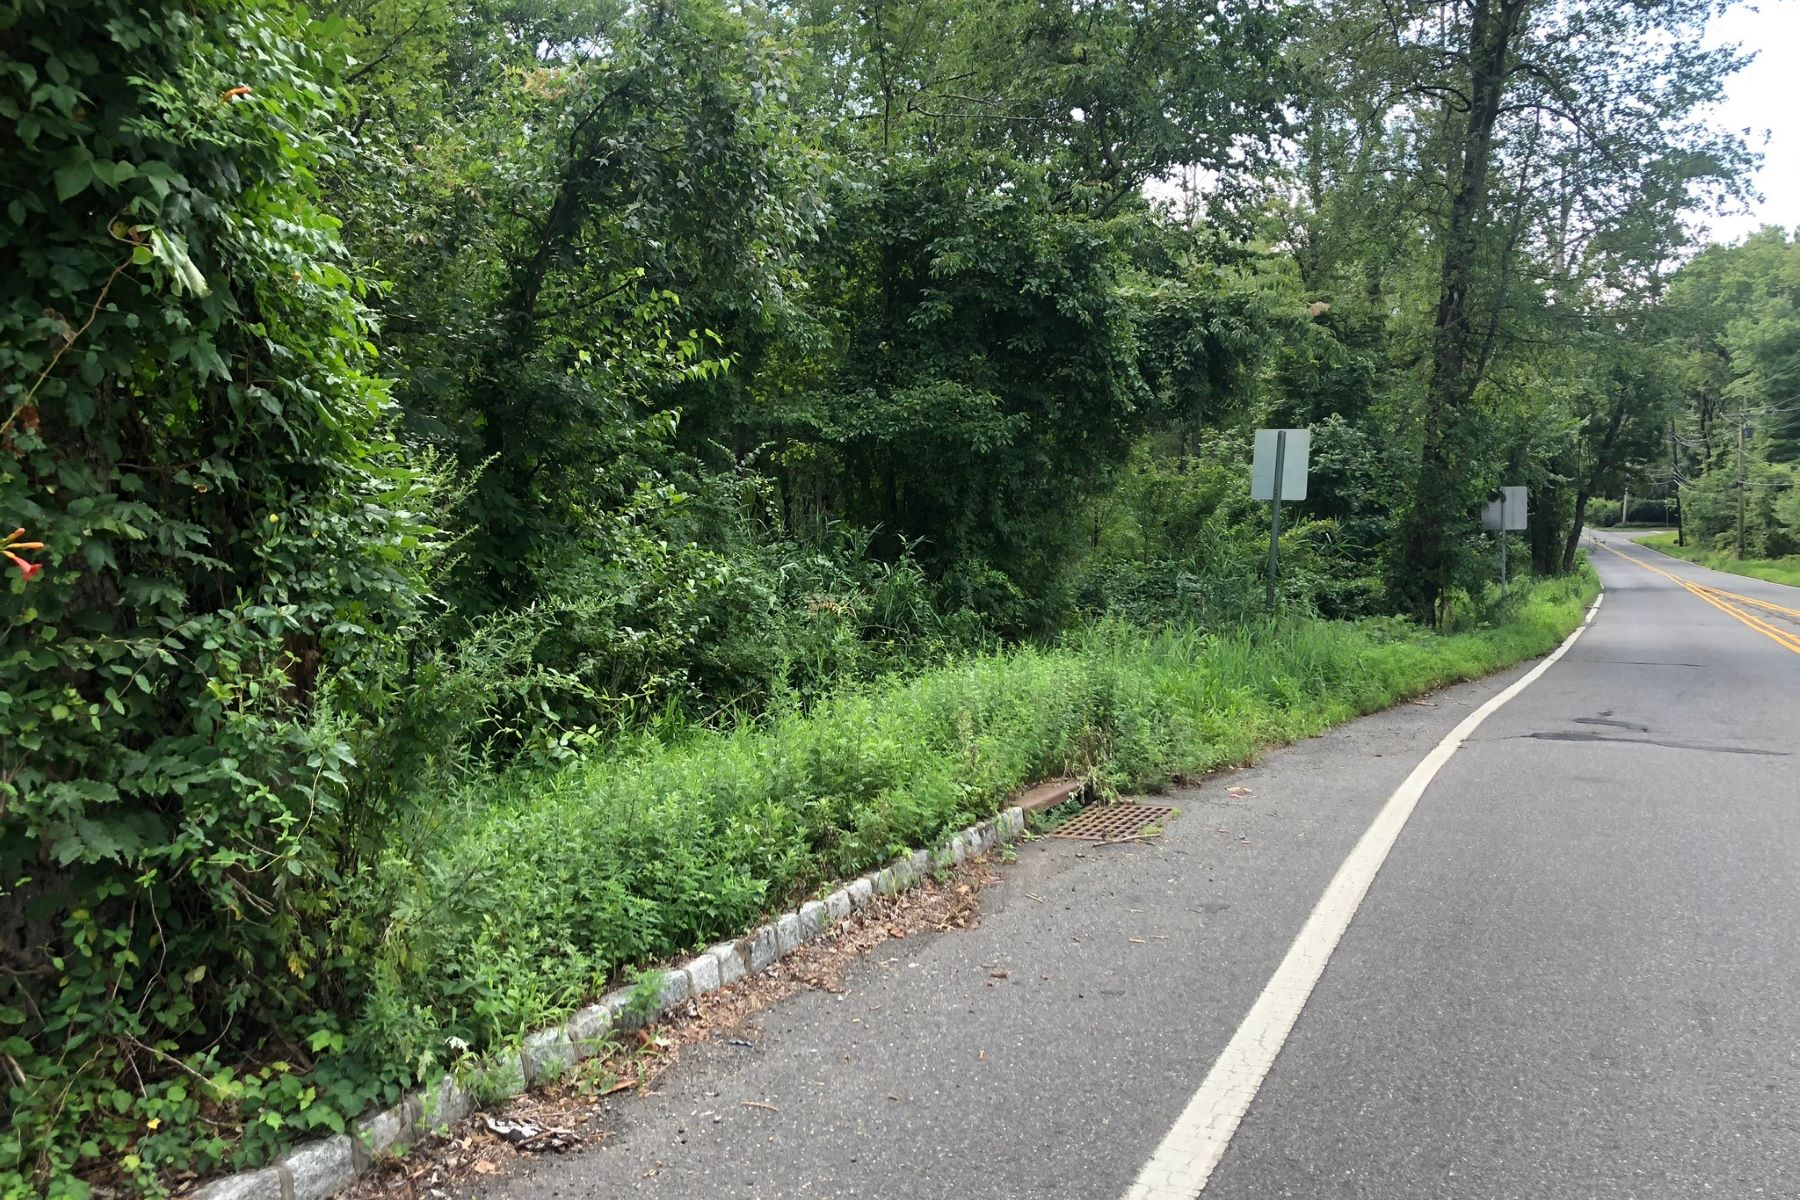 Build Your Dream Home Here! 1287 Great Road, Princeton, New Jersey 08540 Vereinigte Staaten